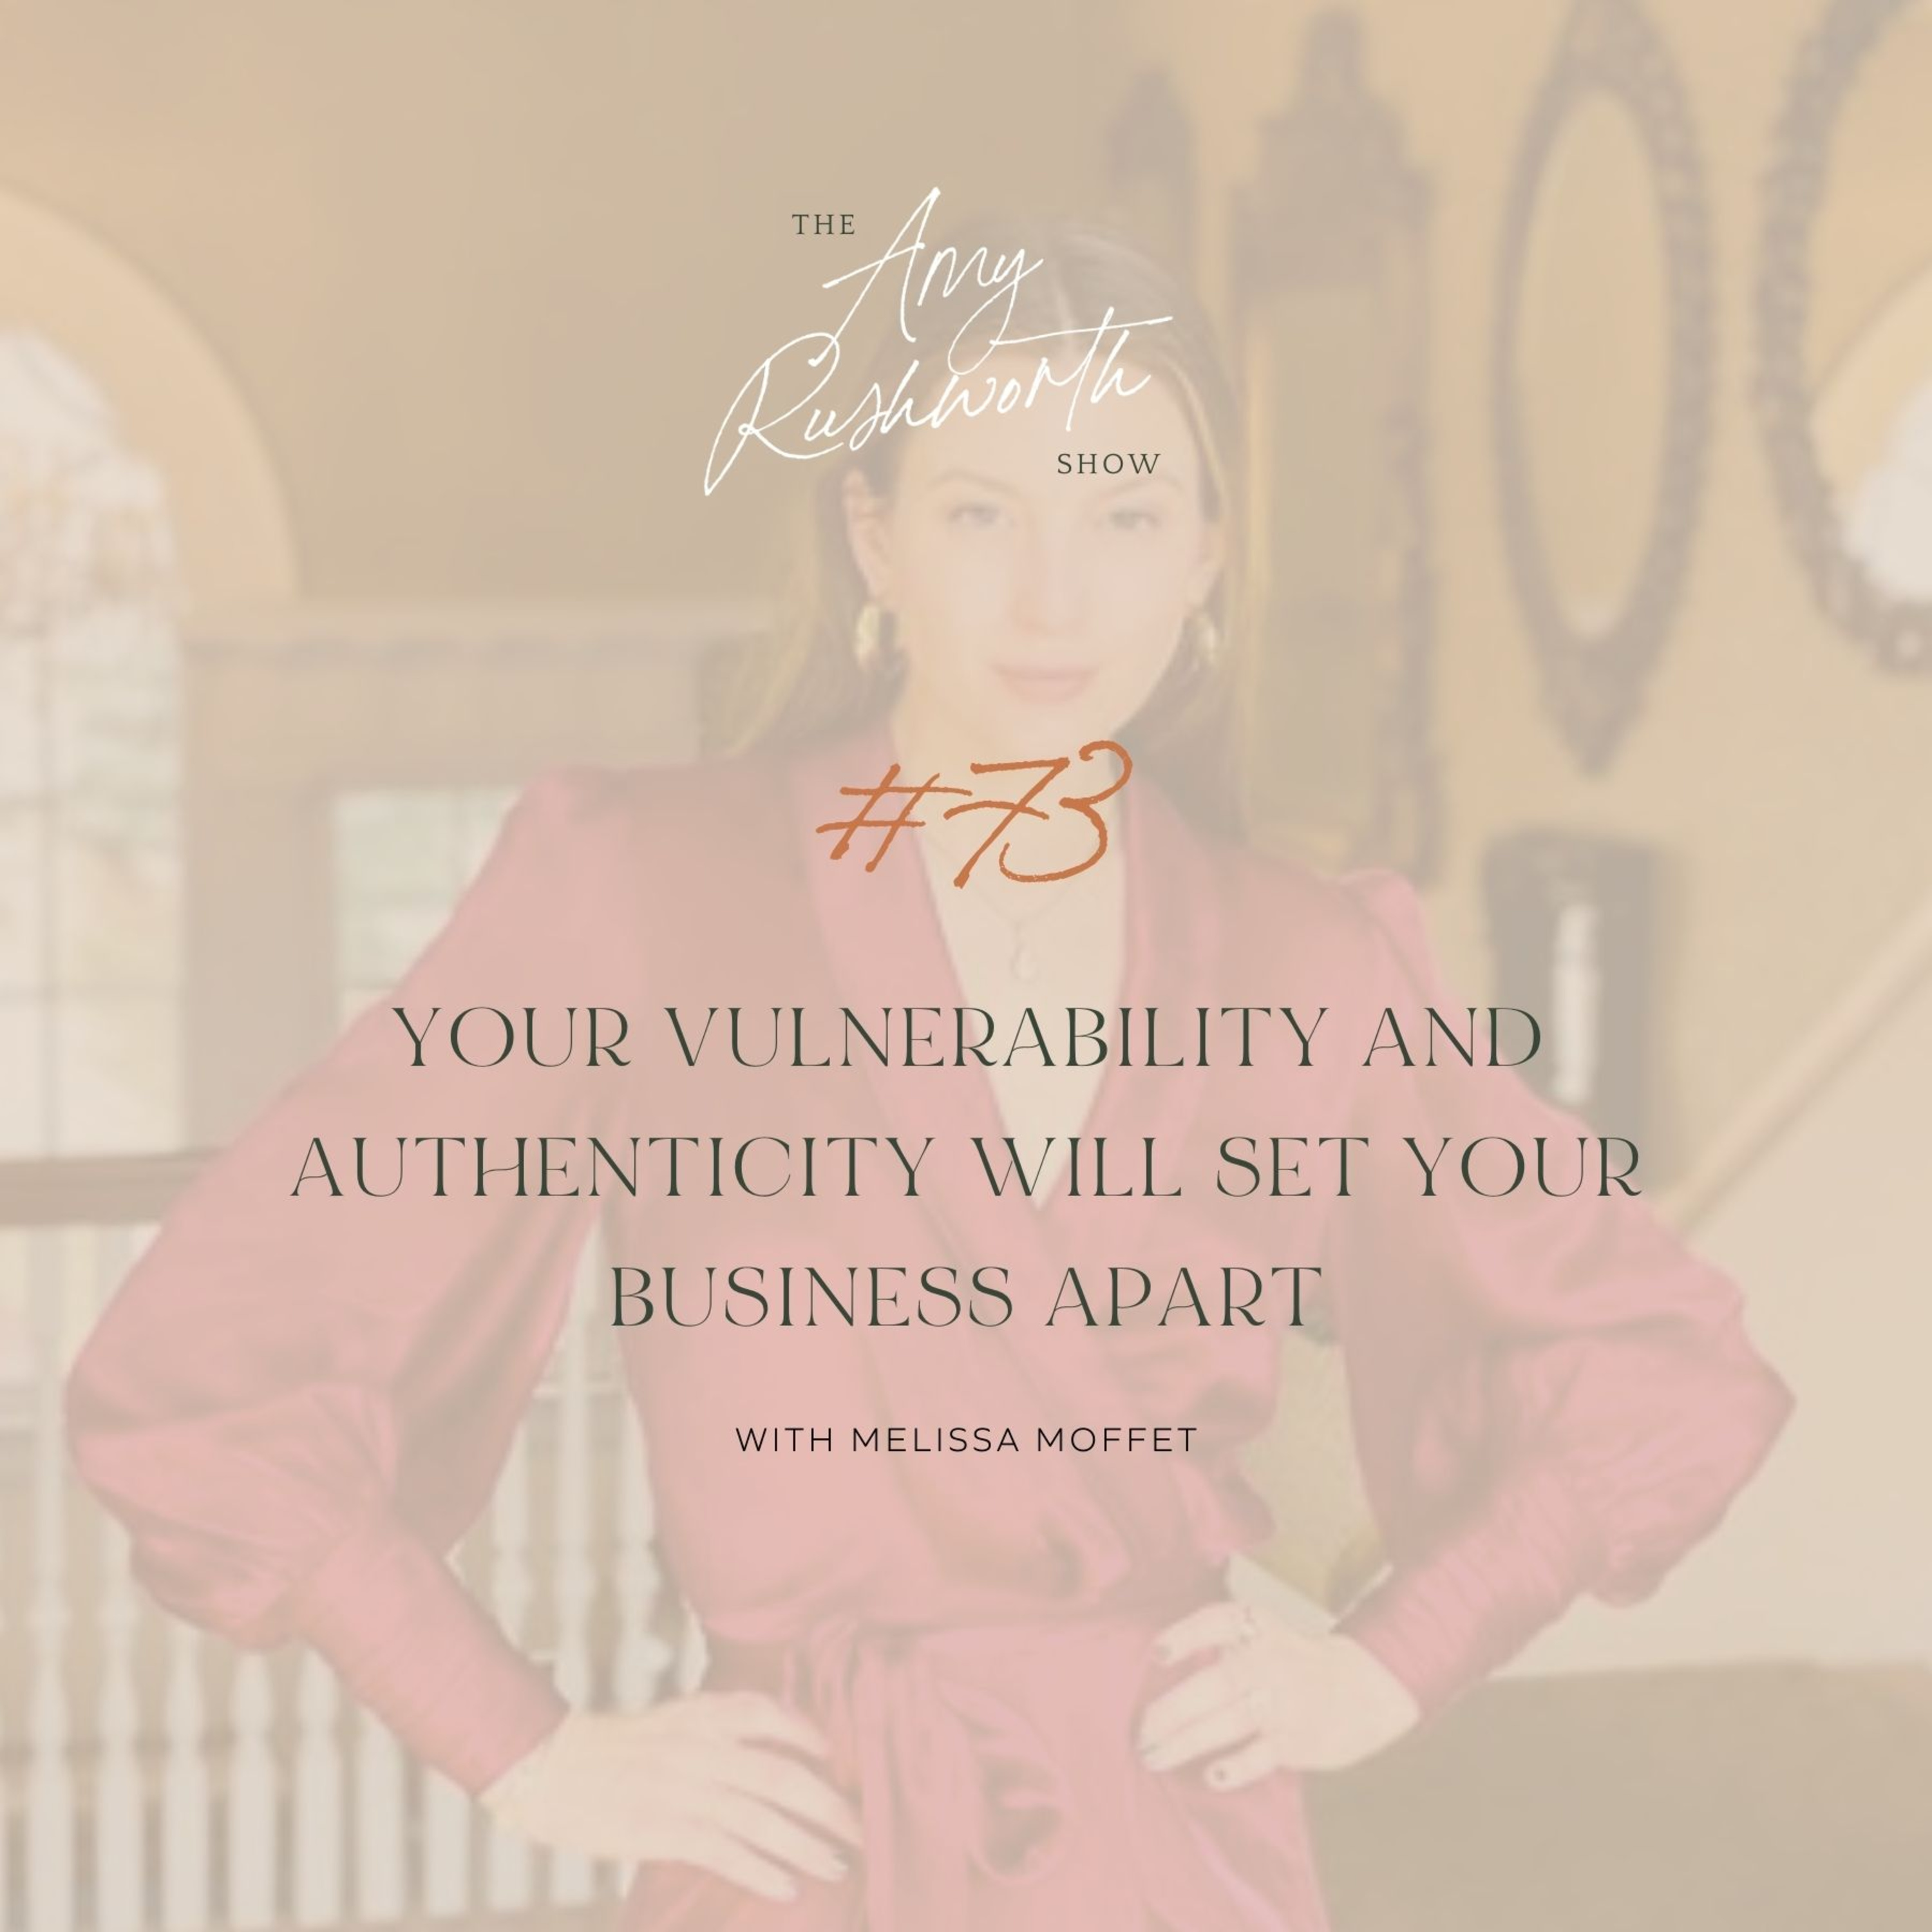 73 - Your Vulnerability + Authenticity Will Set Your Business Apart with Melissa Moffet